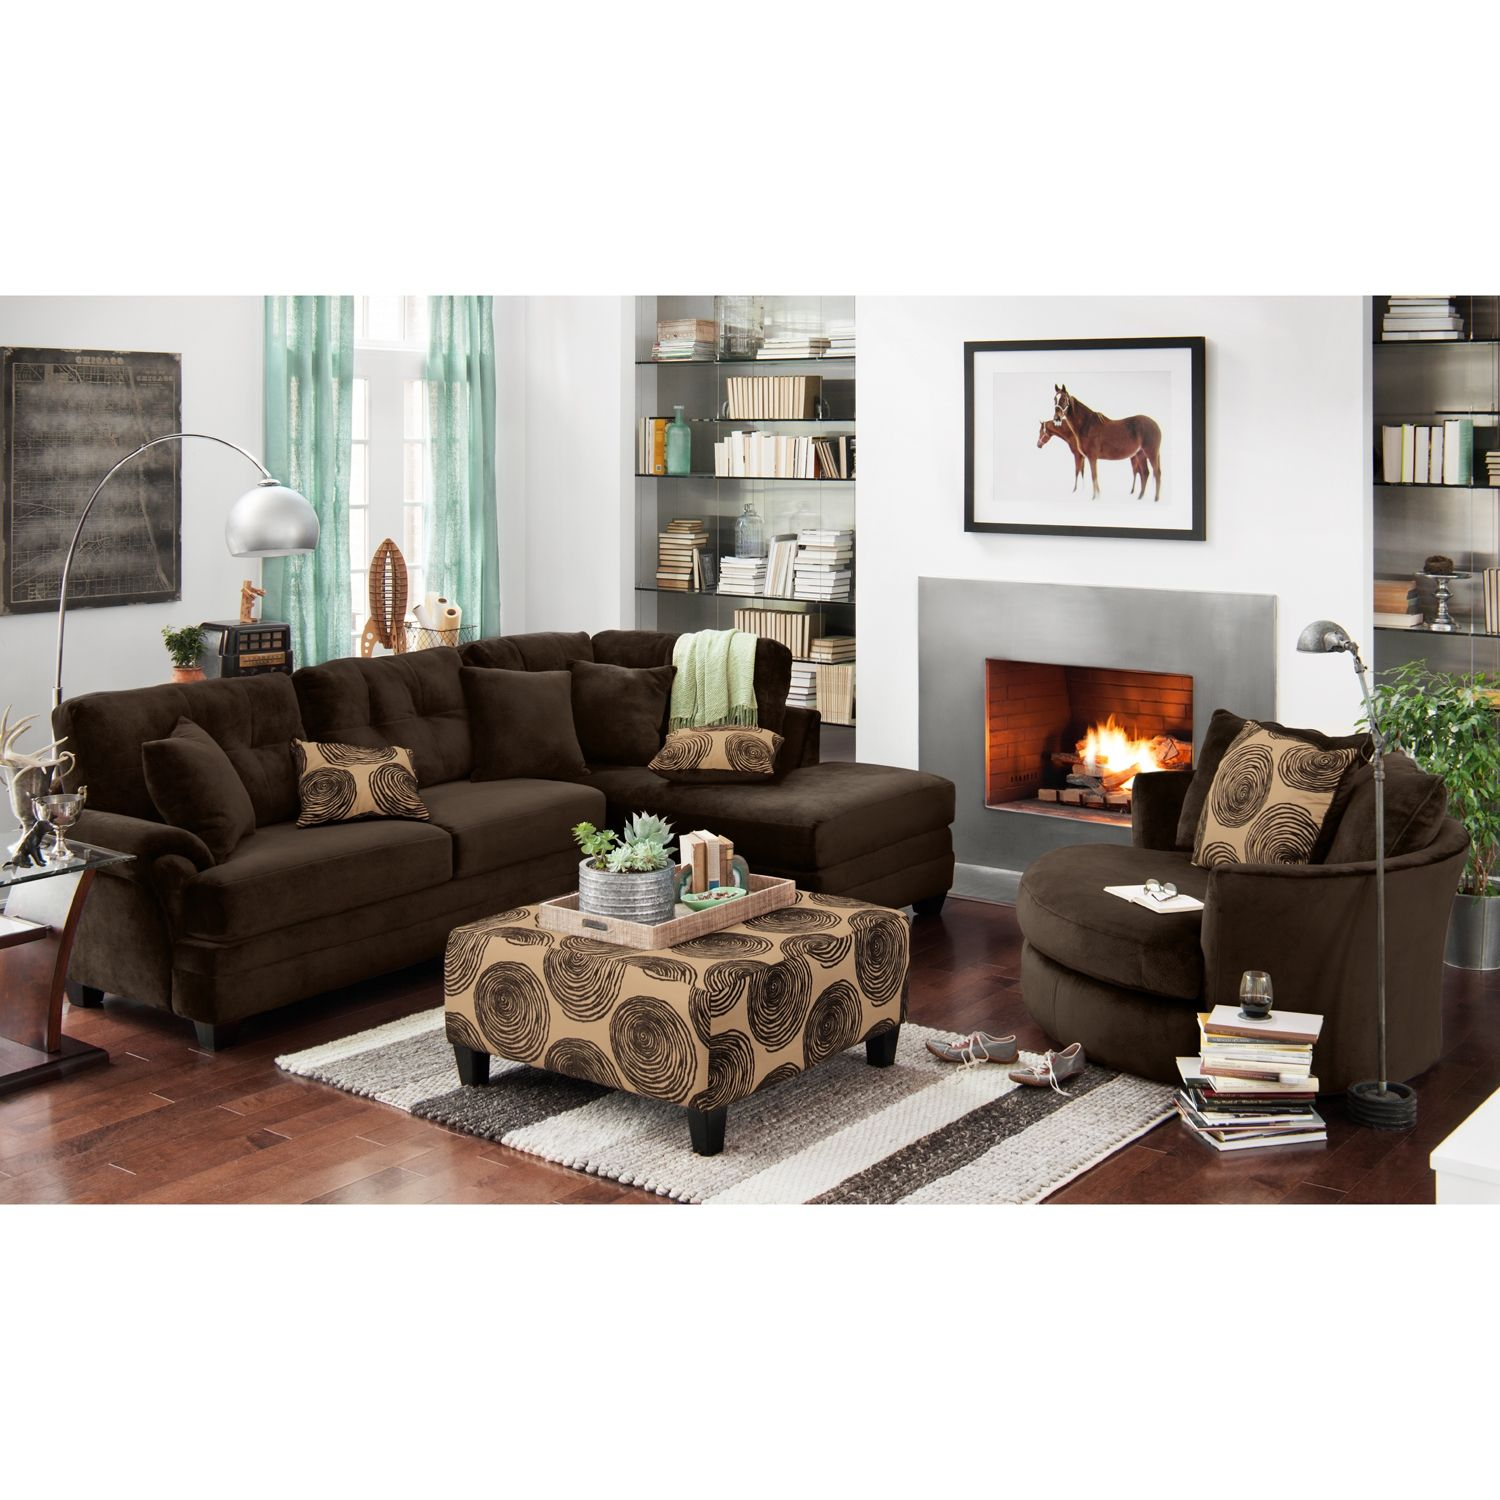 Living room furniture cordoba 2 pc sectional - Living Room Furniture Cordoba Chocolate Ii 2 Pc Sectional